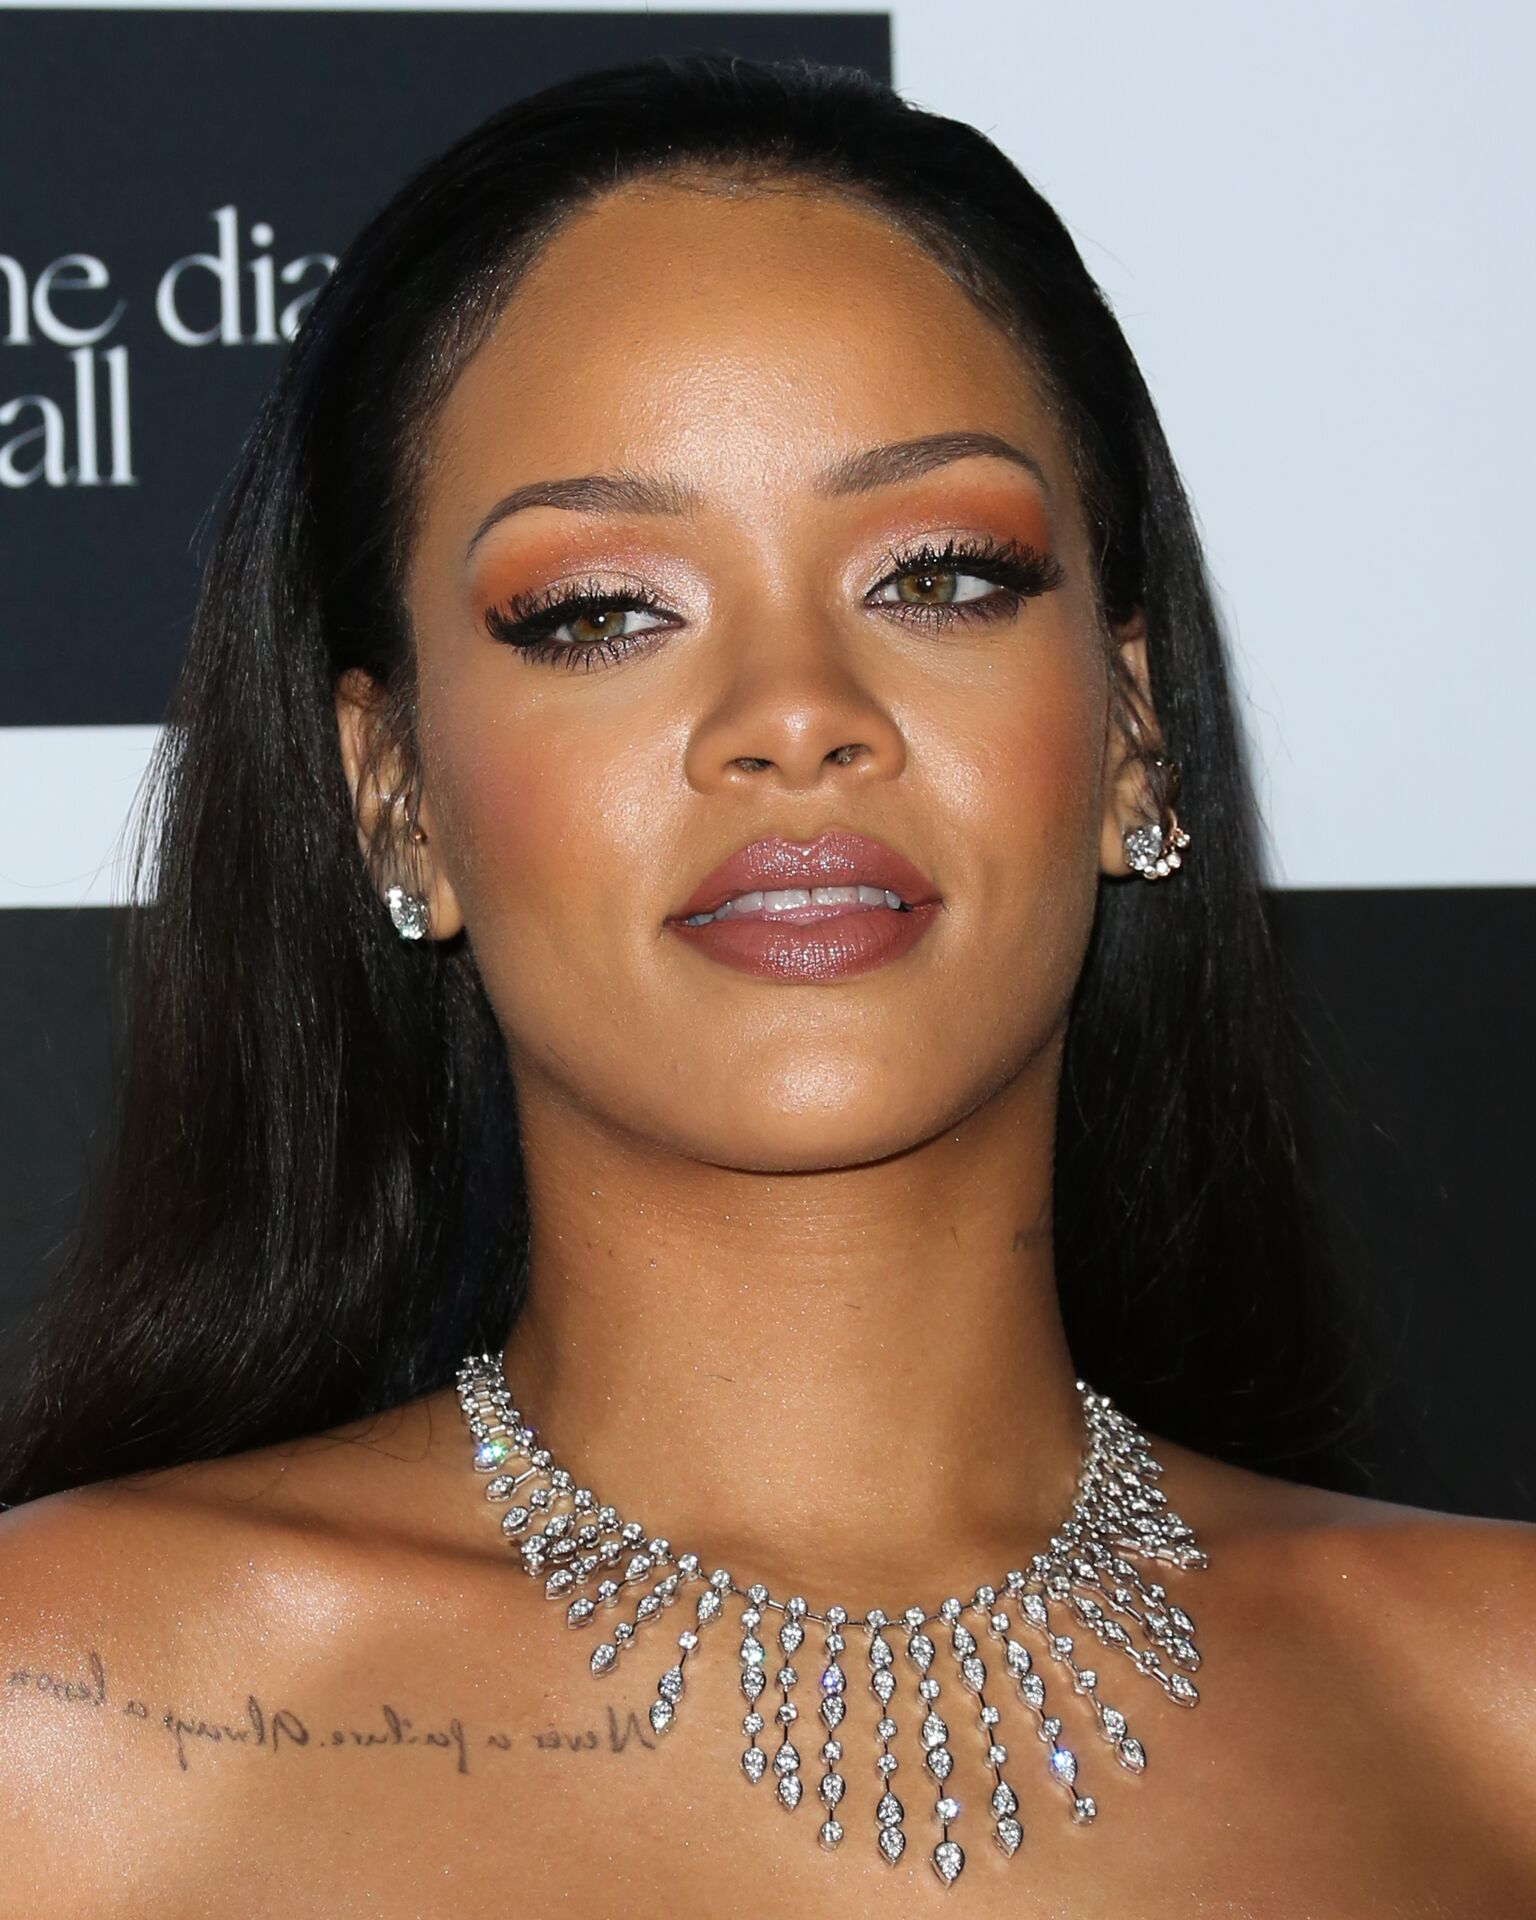 Rihanna arrived on the red carpet at the 2nd Diamond Ball on December 10, 2015, in Santa Monica, California | Source: Paul Archuleta/Getty Images